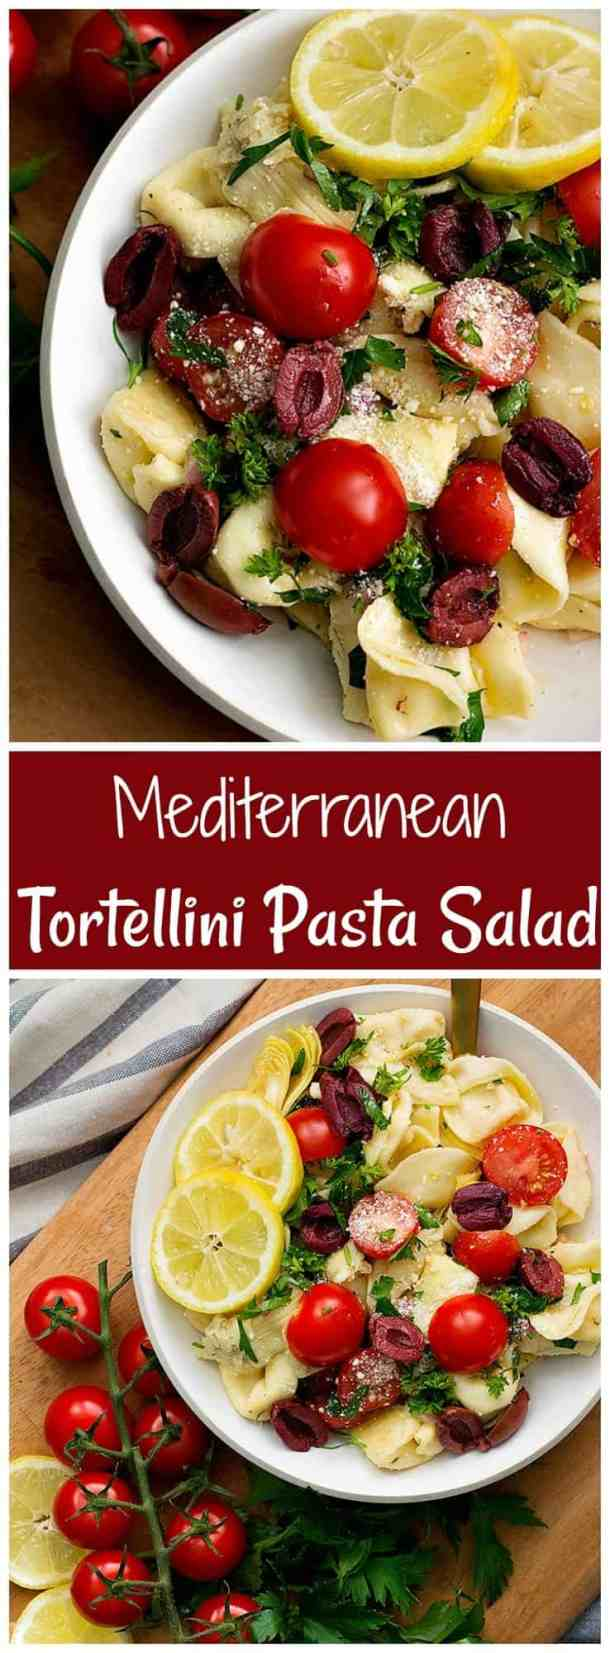 This tortellini pasta salad with a Mediterranean twist is the perfect side dish for any potluck. Make this easy tortellini salad with just a few ingredients and in no time! #pastasalad #saladrecipes #tortellinipastasalad #saladrecipes #mediterraneancuisine